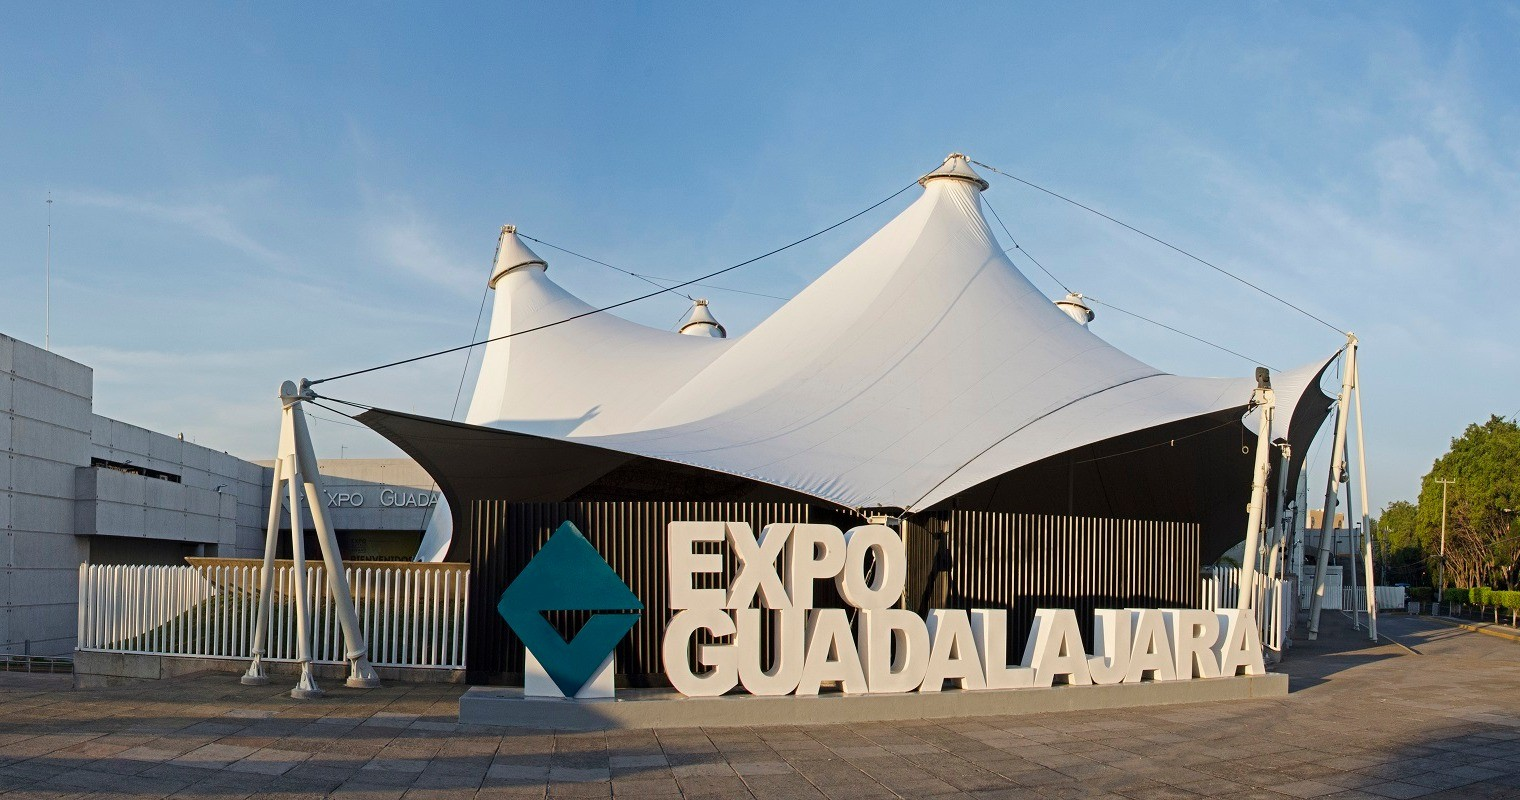 eXPO gUADALAJARA MEETINGS